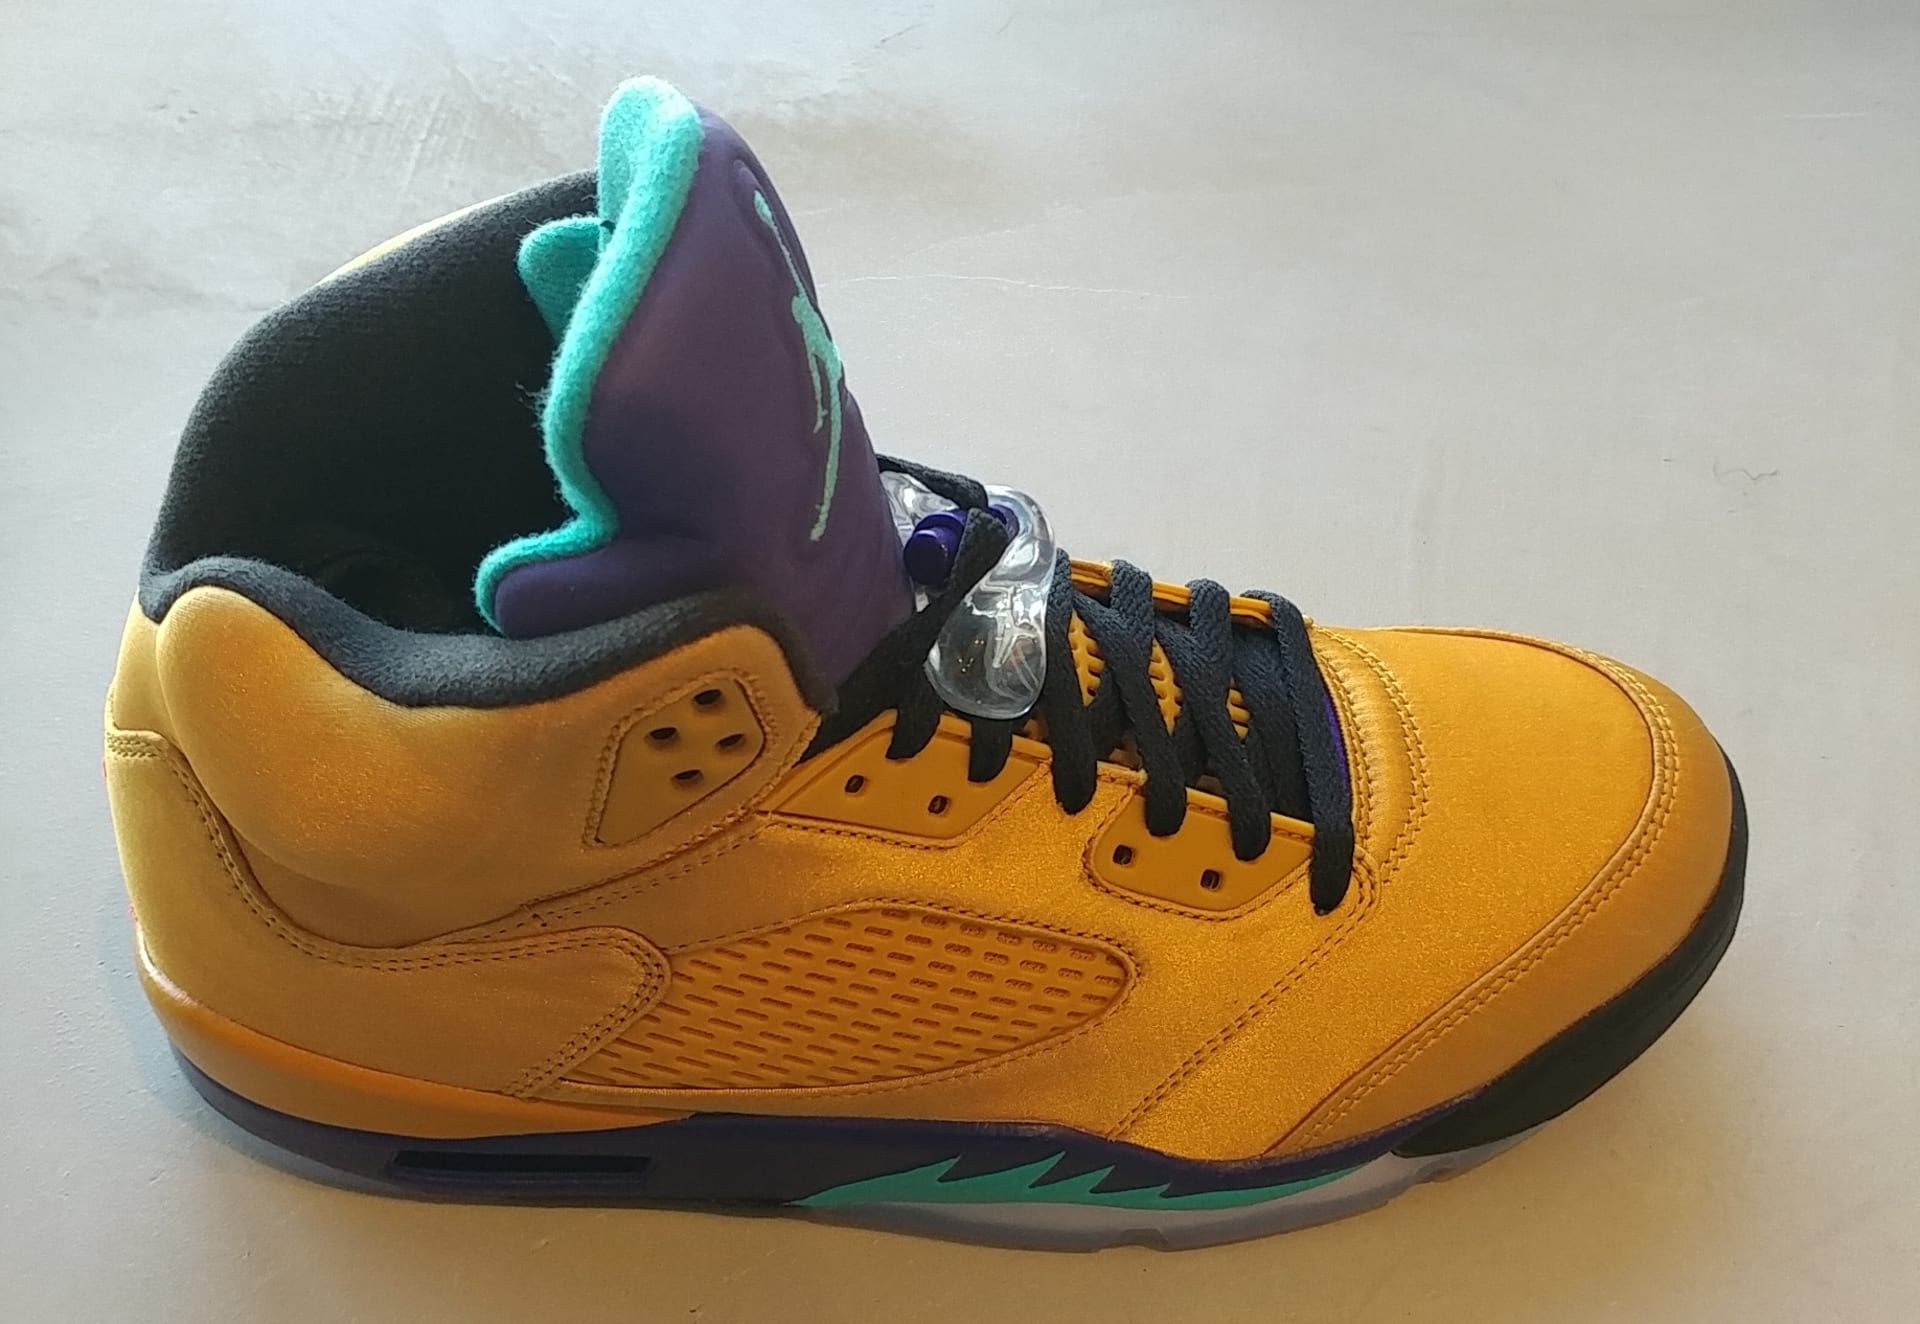 5d8a1fc955e7 Air Jordan 5 NRG  Fresh Prince  Friends and Family ...